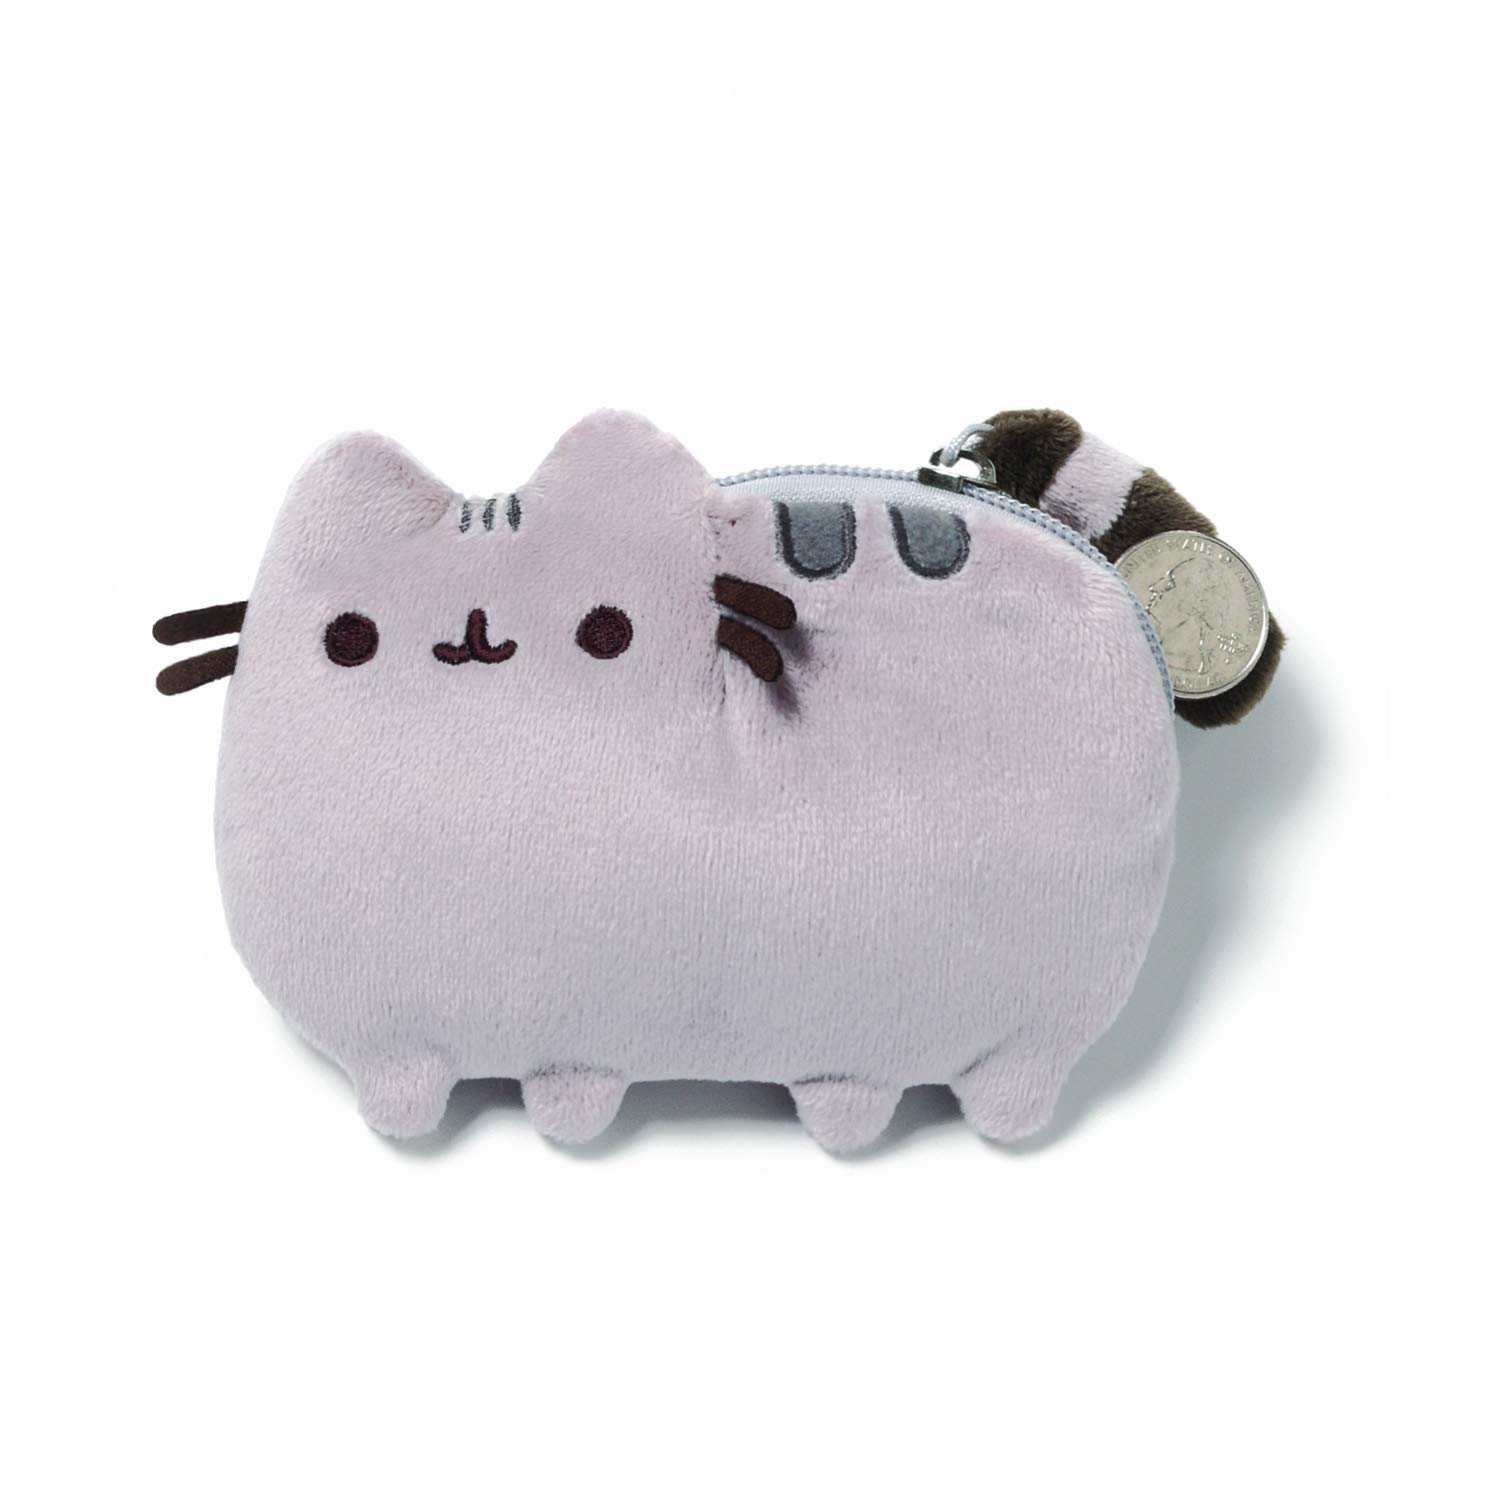 Amazon.com: GUND Pusheenicornio Pusheen Unicornio gato ...